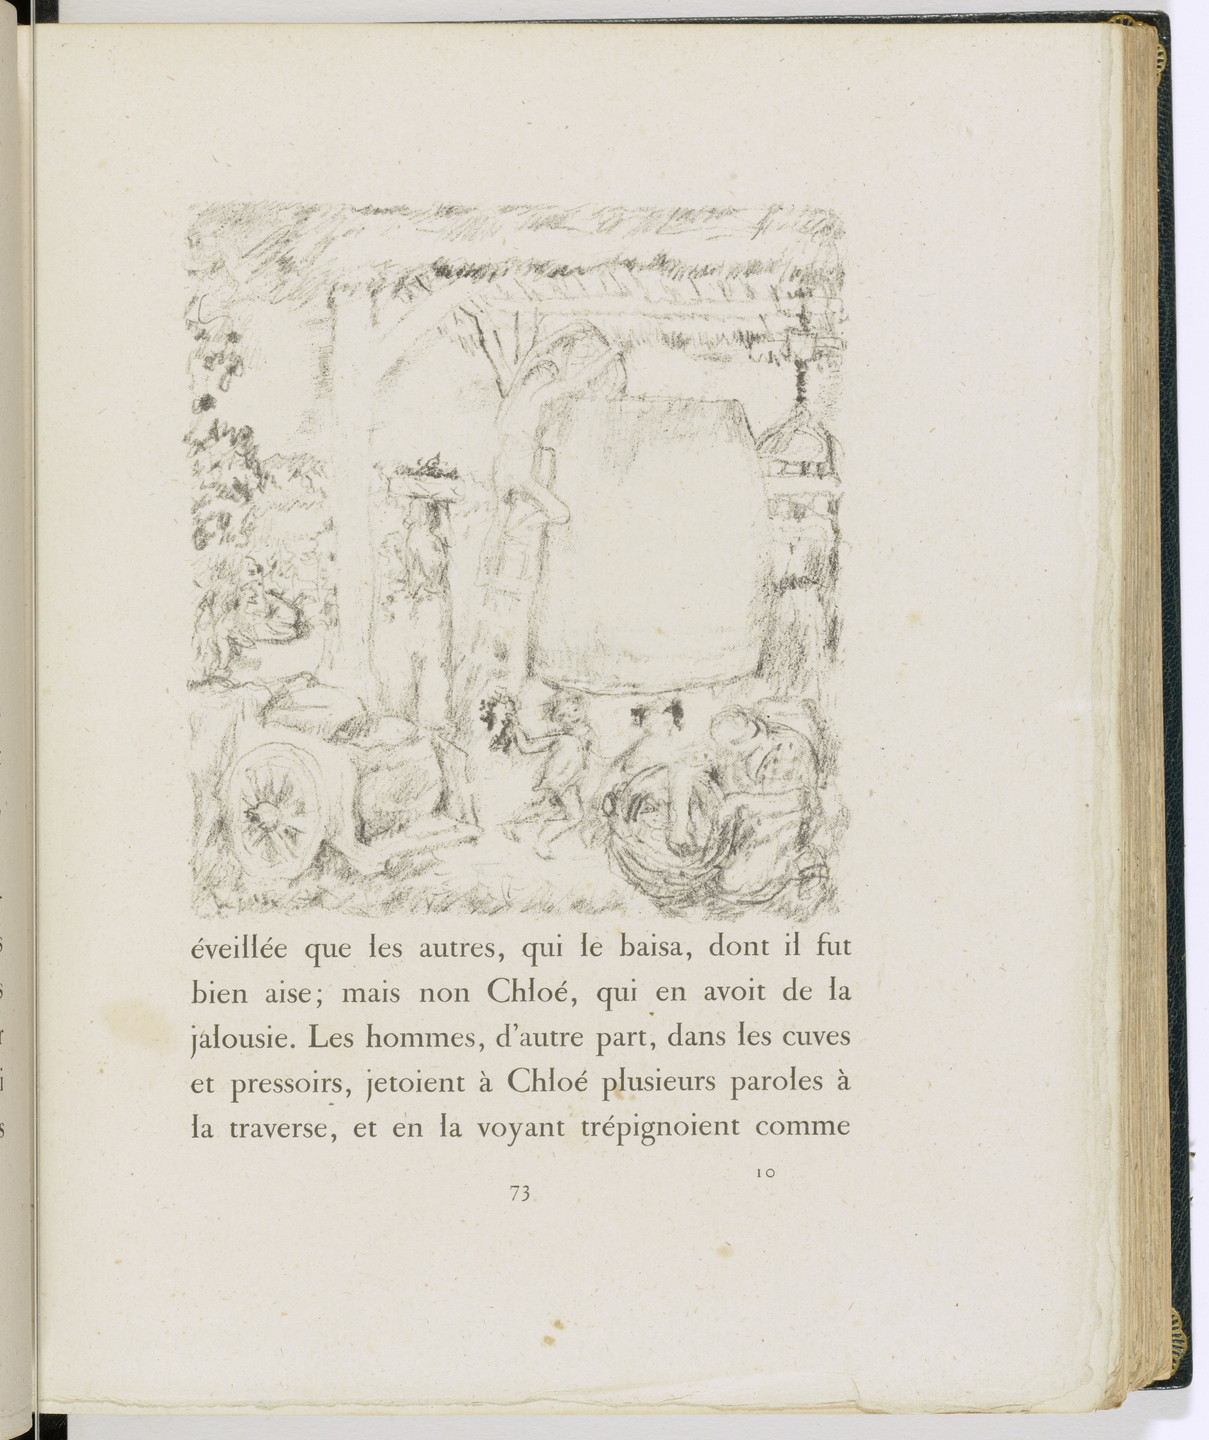 Pierre Bonnard. In-text plate (page 73) from Daphnis et Chloé. 1902